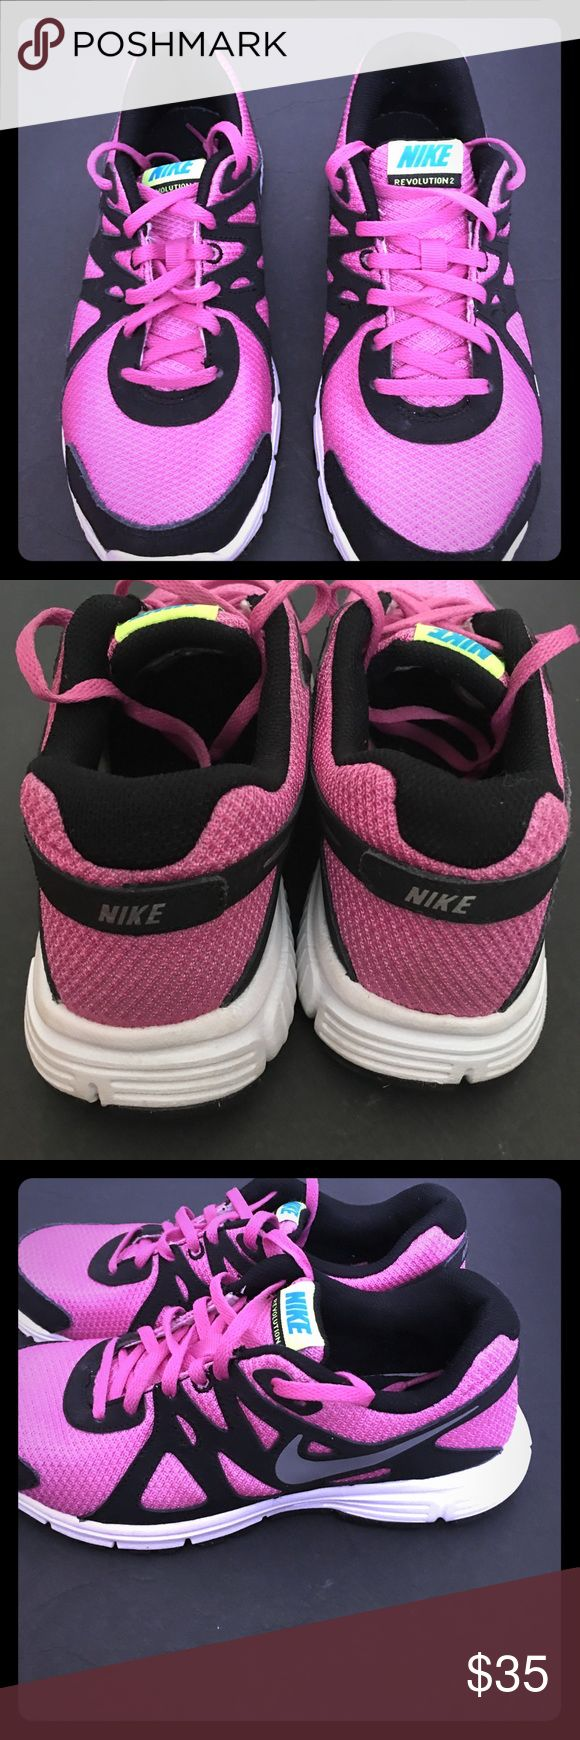 NIKE ONLY WORN ONCE ❤️ NIKE  revolution 2 Pink & Black, super cute, women's 7 , boys 5 1/2👟👟👟👟👟👟 only worn a few times still look like knew 🌸🌸🌸🌸🌸🌸🌷🌷🌷🌷🌷🌷🌸🌸🌸🌸🌸🌸 Nike Shoes Athletic Shoes